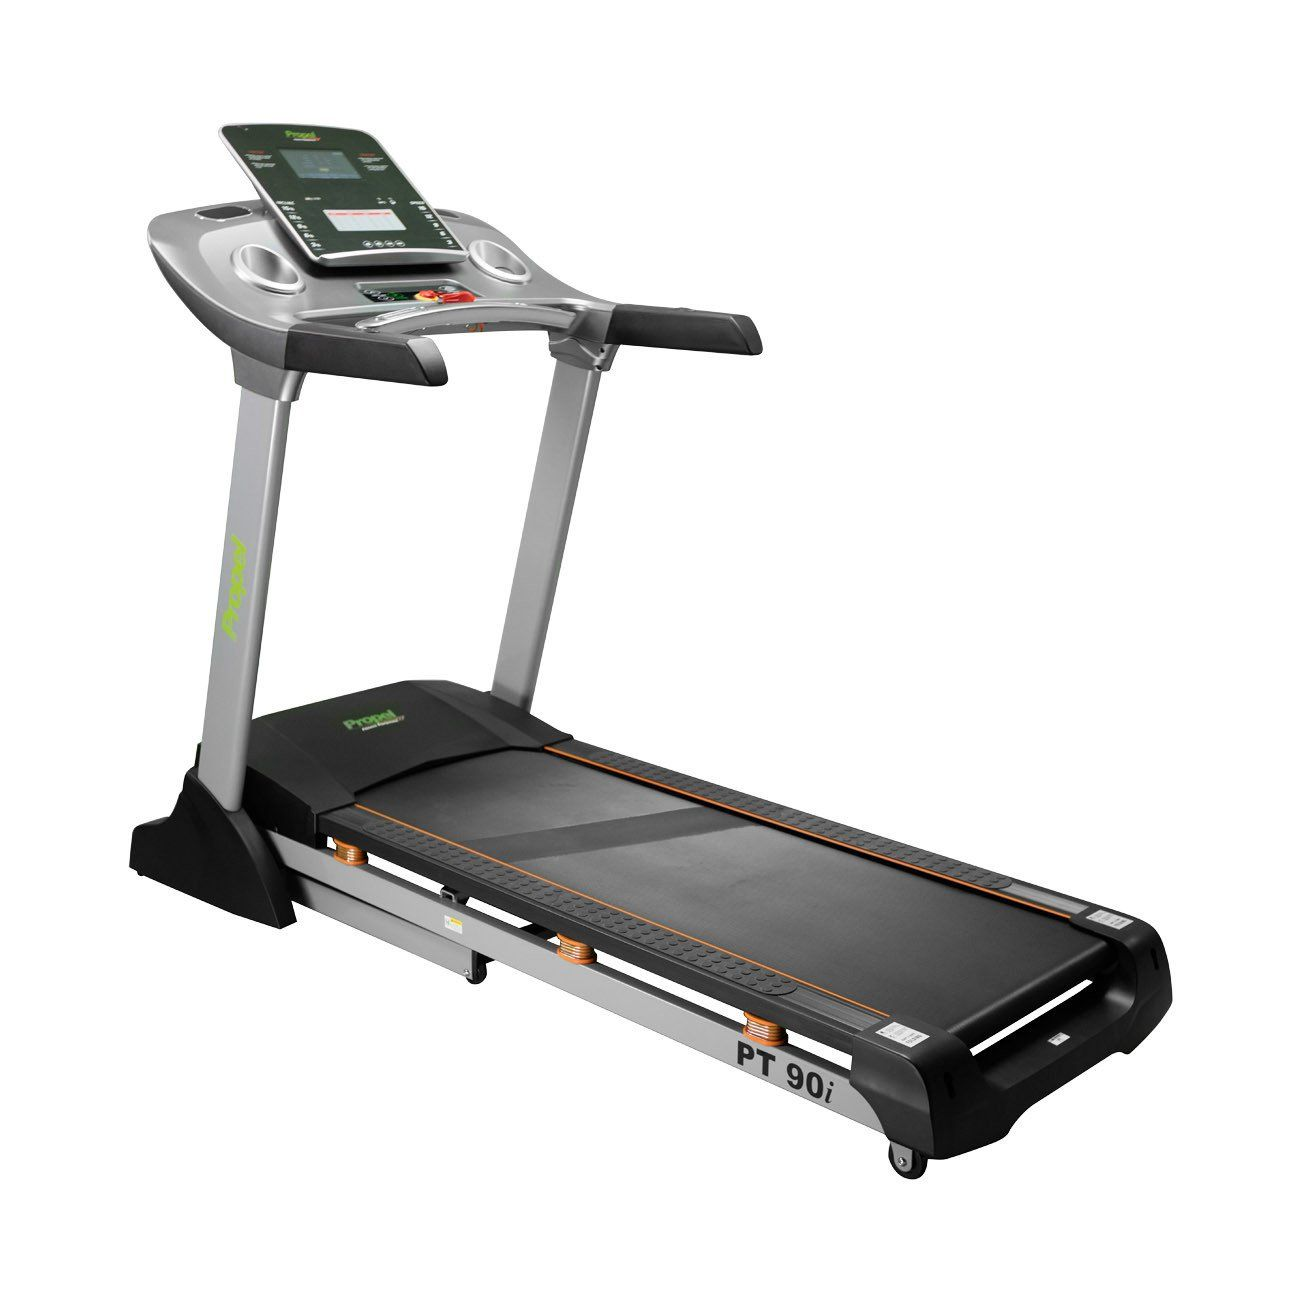 Online Shopping For Treadmills Buy Aerobic Training Machines Manual Automatic Or Motorized Treadmills Treadmill Best Treadmill For Home Good Treadmills